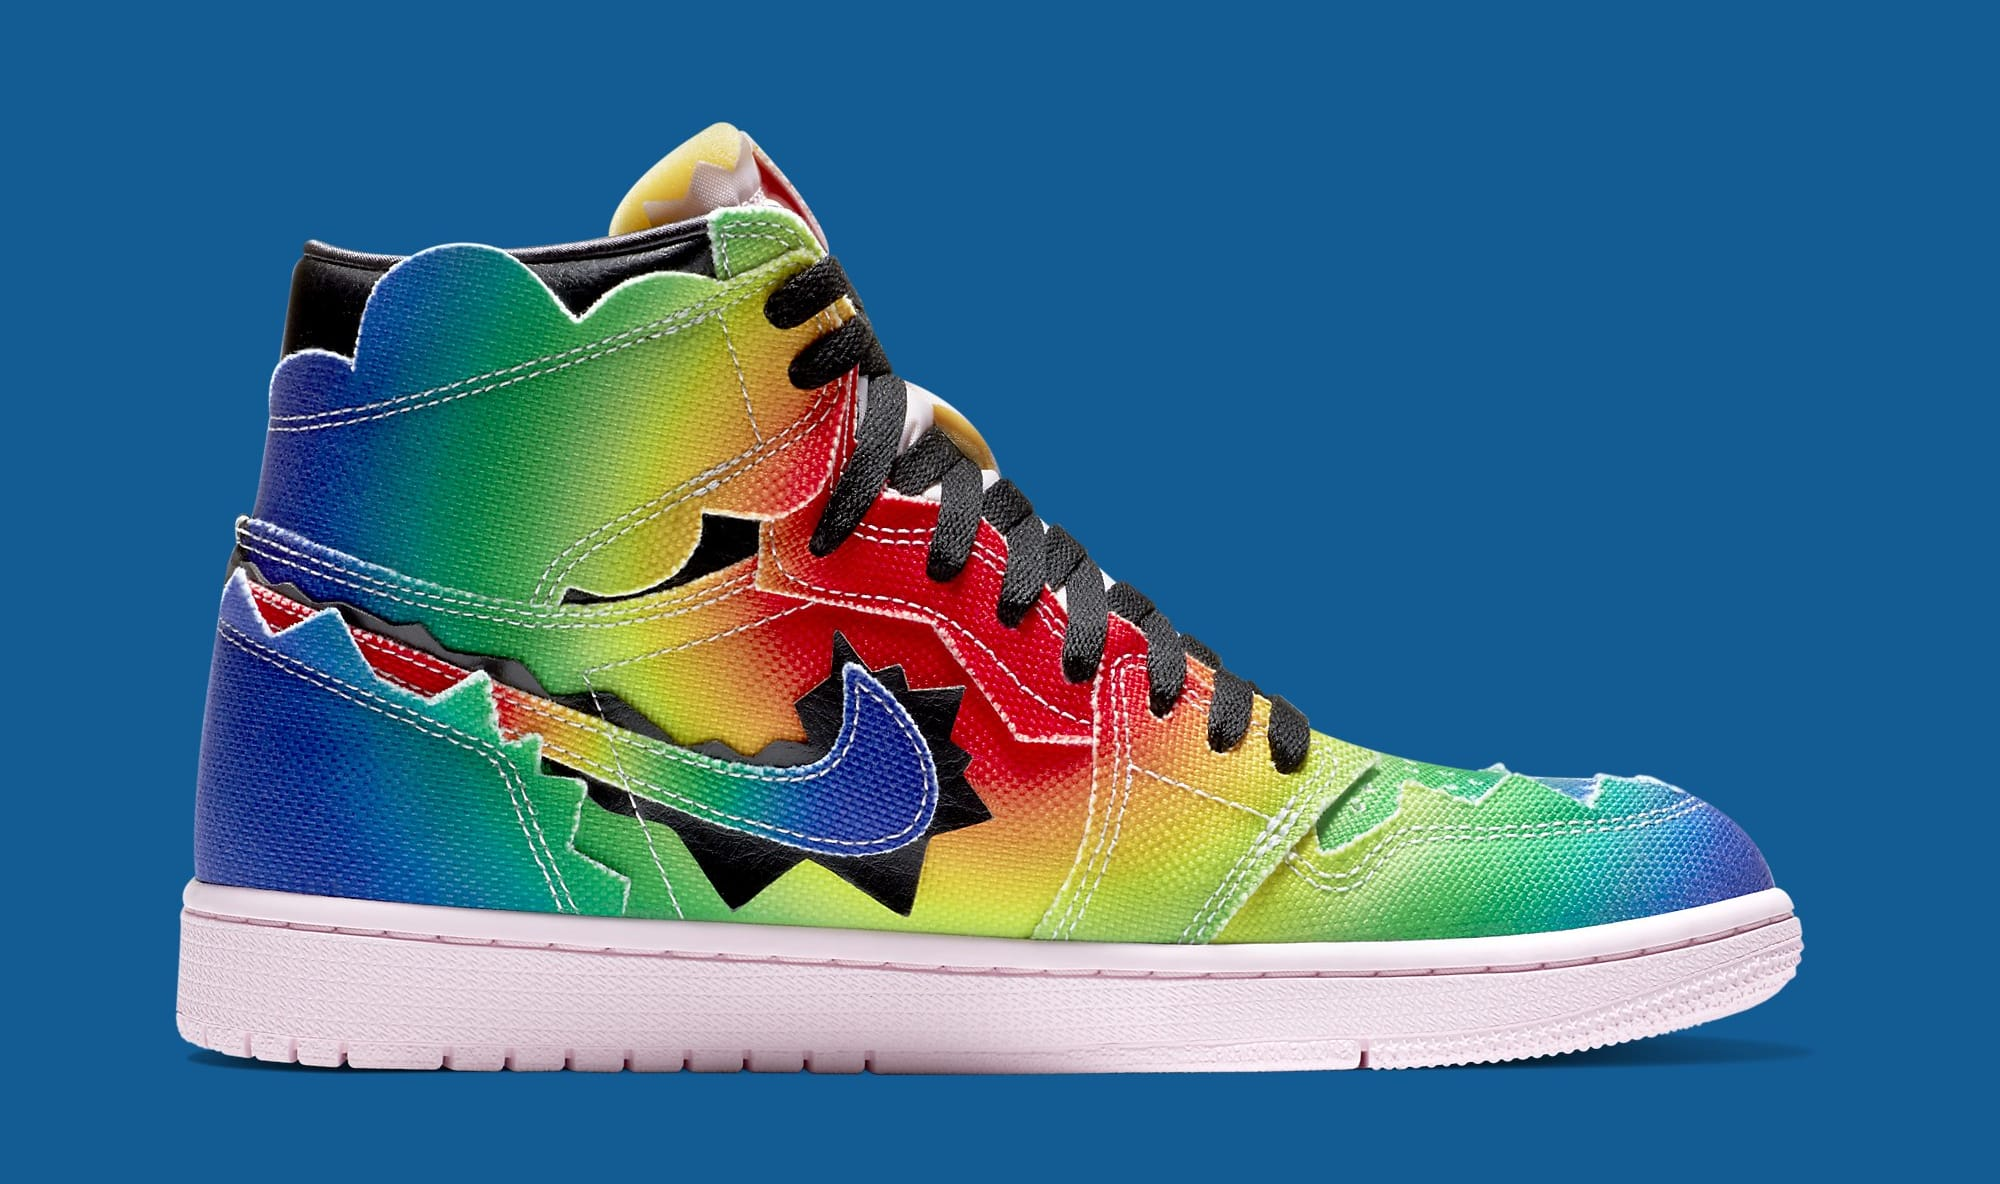 J Balvin x Air Jordan 1 High DC3481-900 Medial